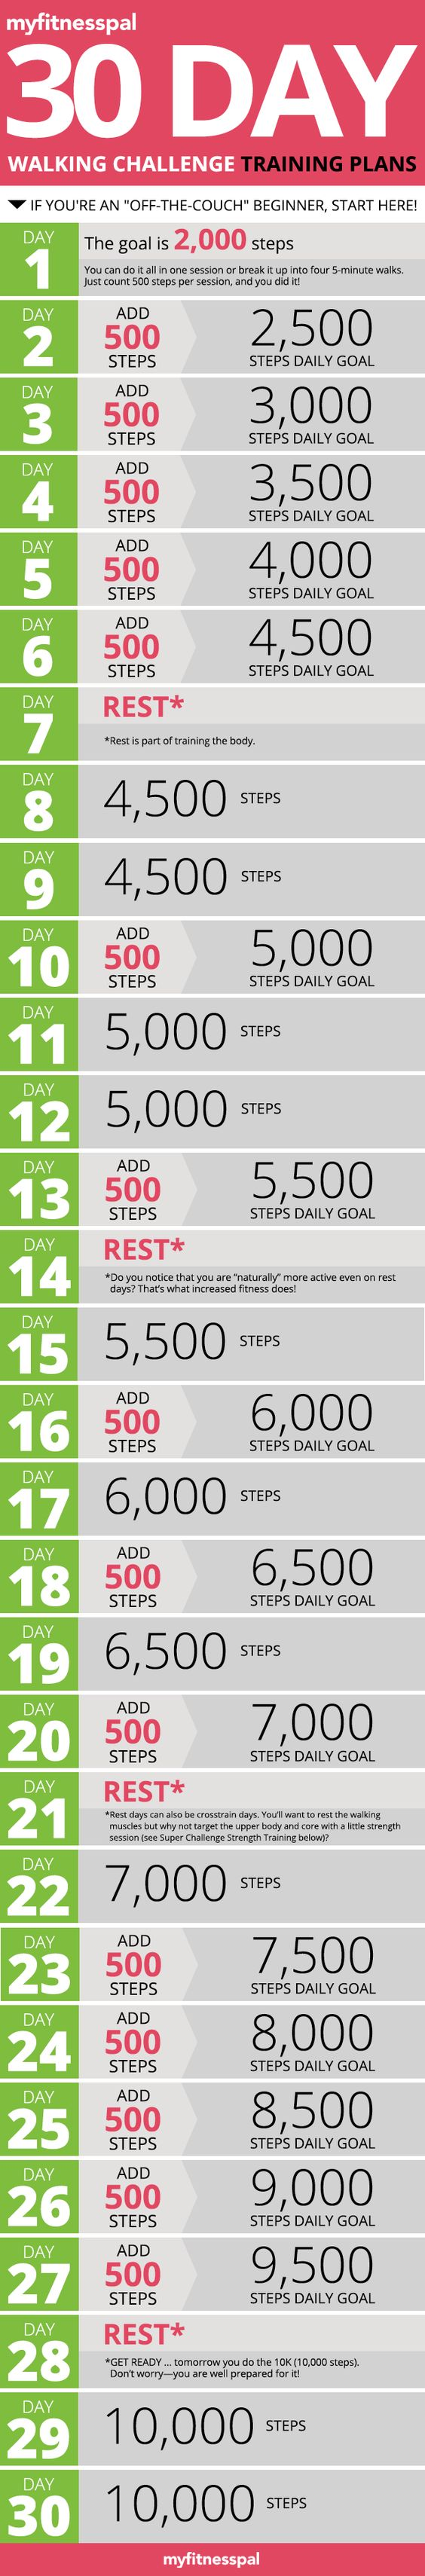 Finding the ways, on how to lose weight easily? find this 30 days walking challenge for easy weight loss, suggested by Myfitnesspal. If you don't like intense workout schedule, then its for you. So start from today to lose your weight. Lose 1 pounds in one week easily. Best weight loss tips. Lose weight by walking. Health benefits of walking. Weight loss by walking without any dietary changes.